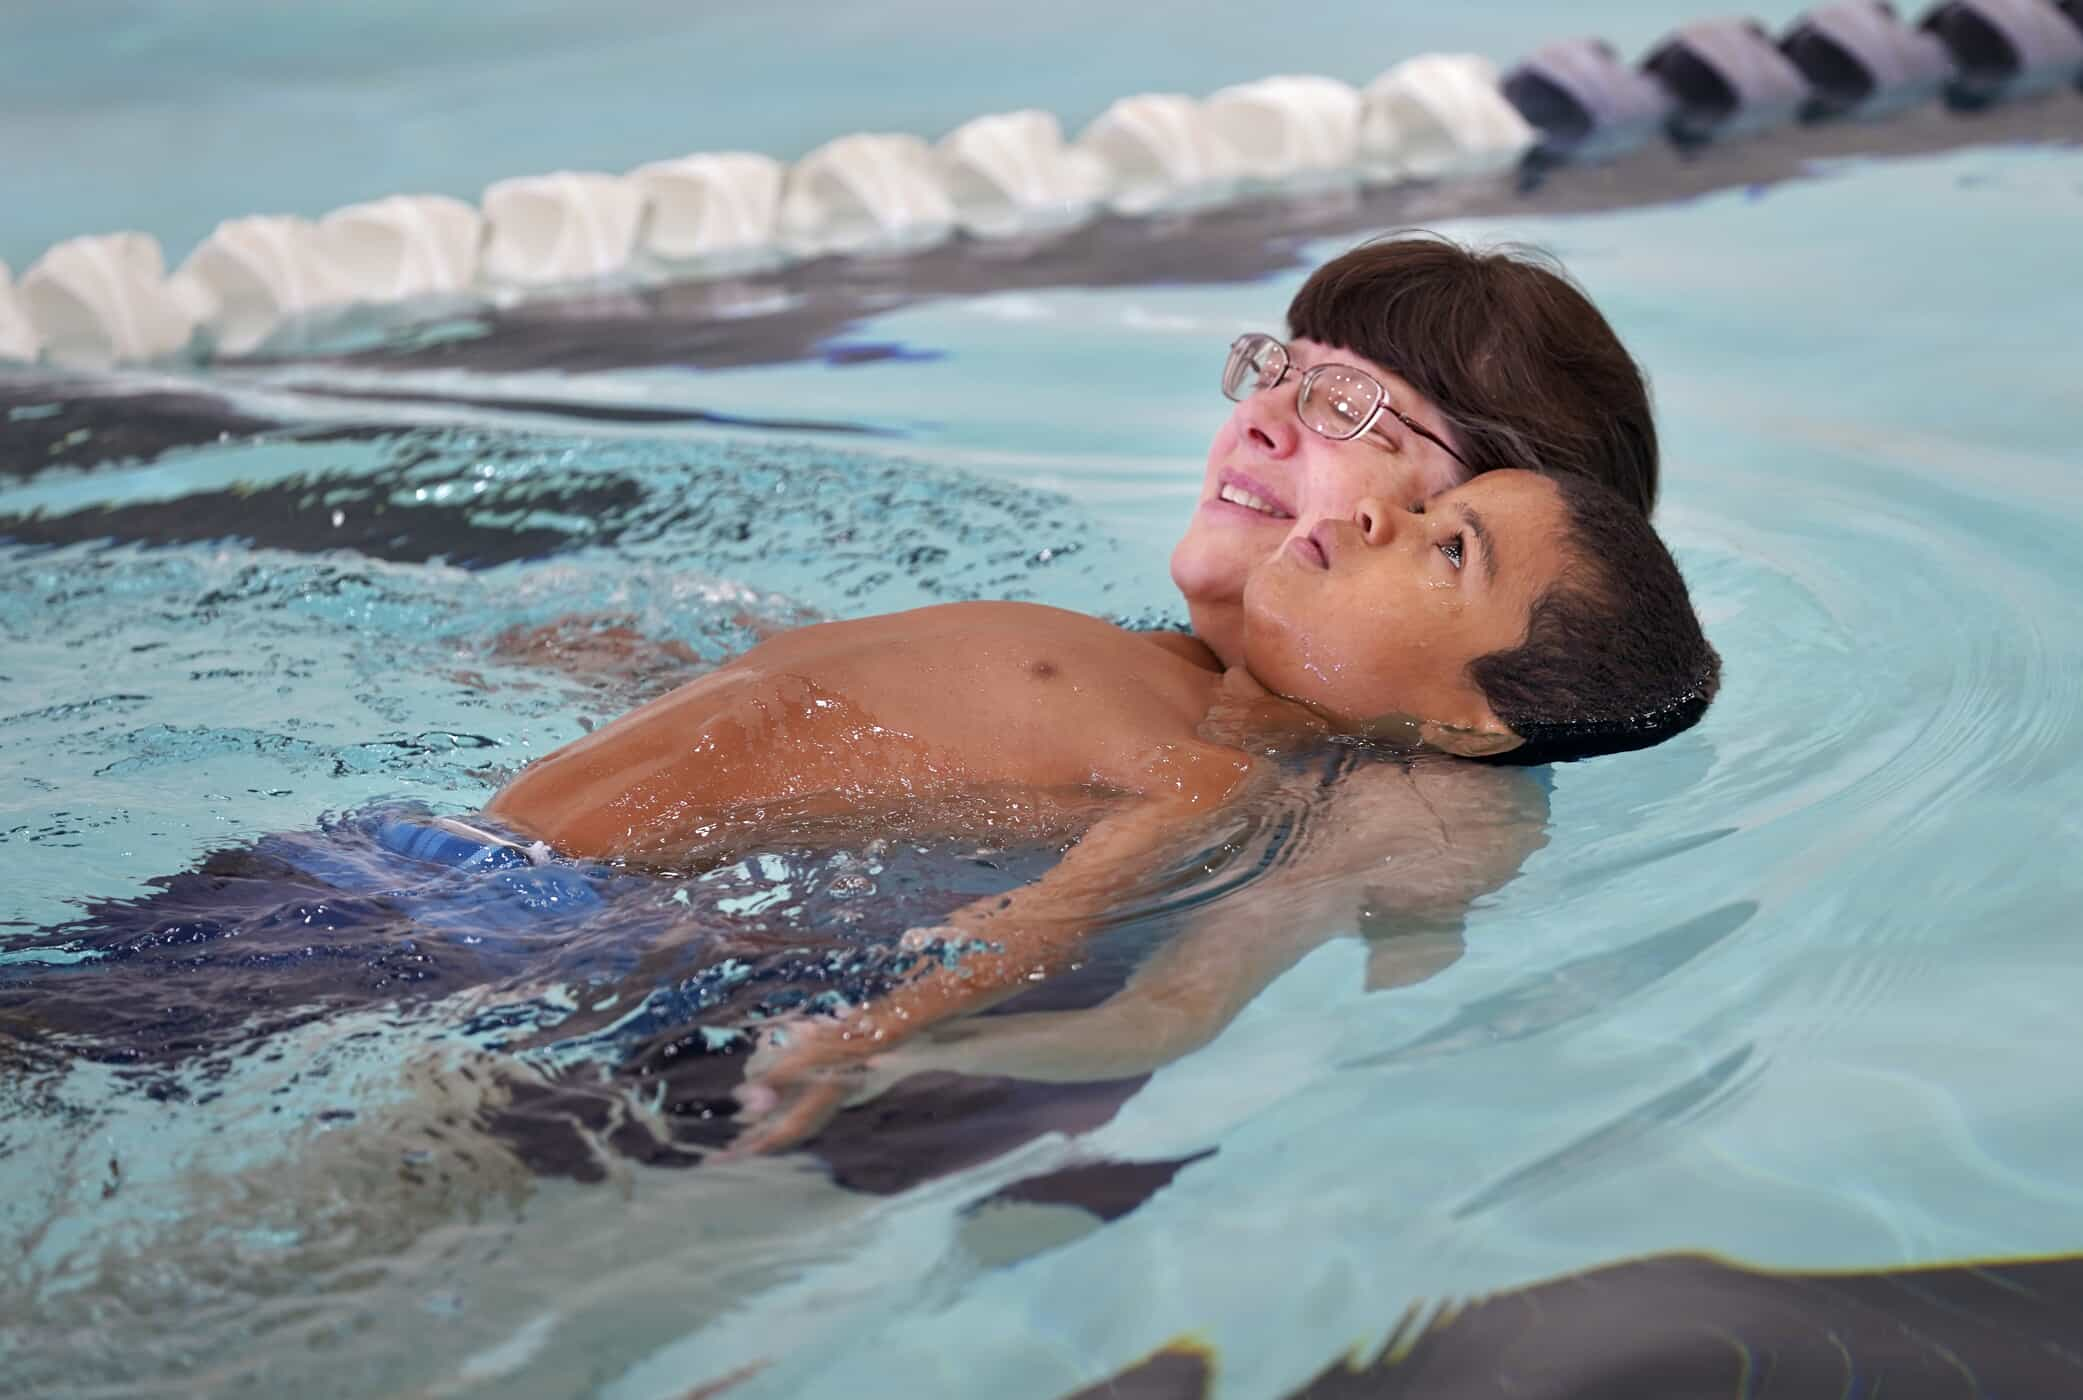 Photo of young boy during swim lessons